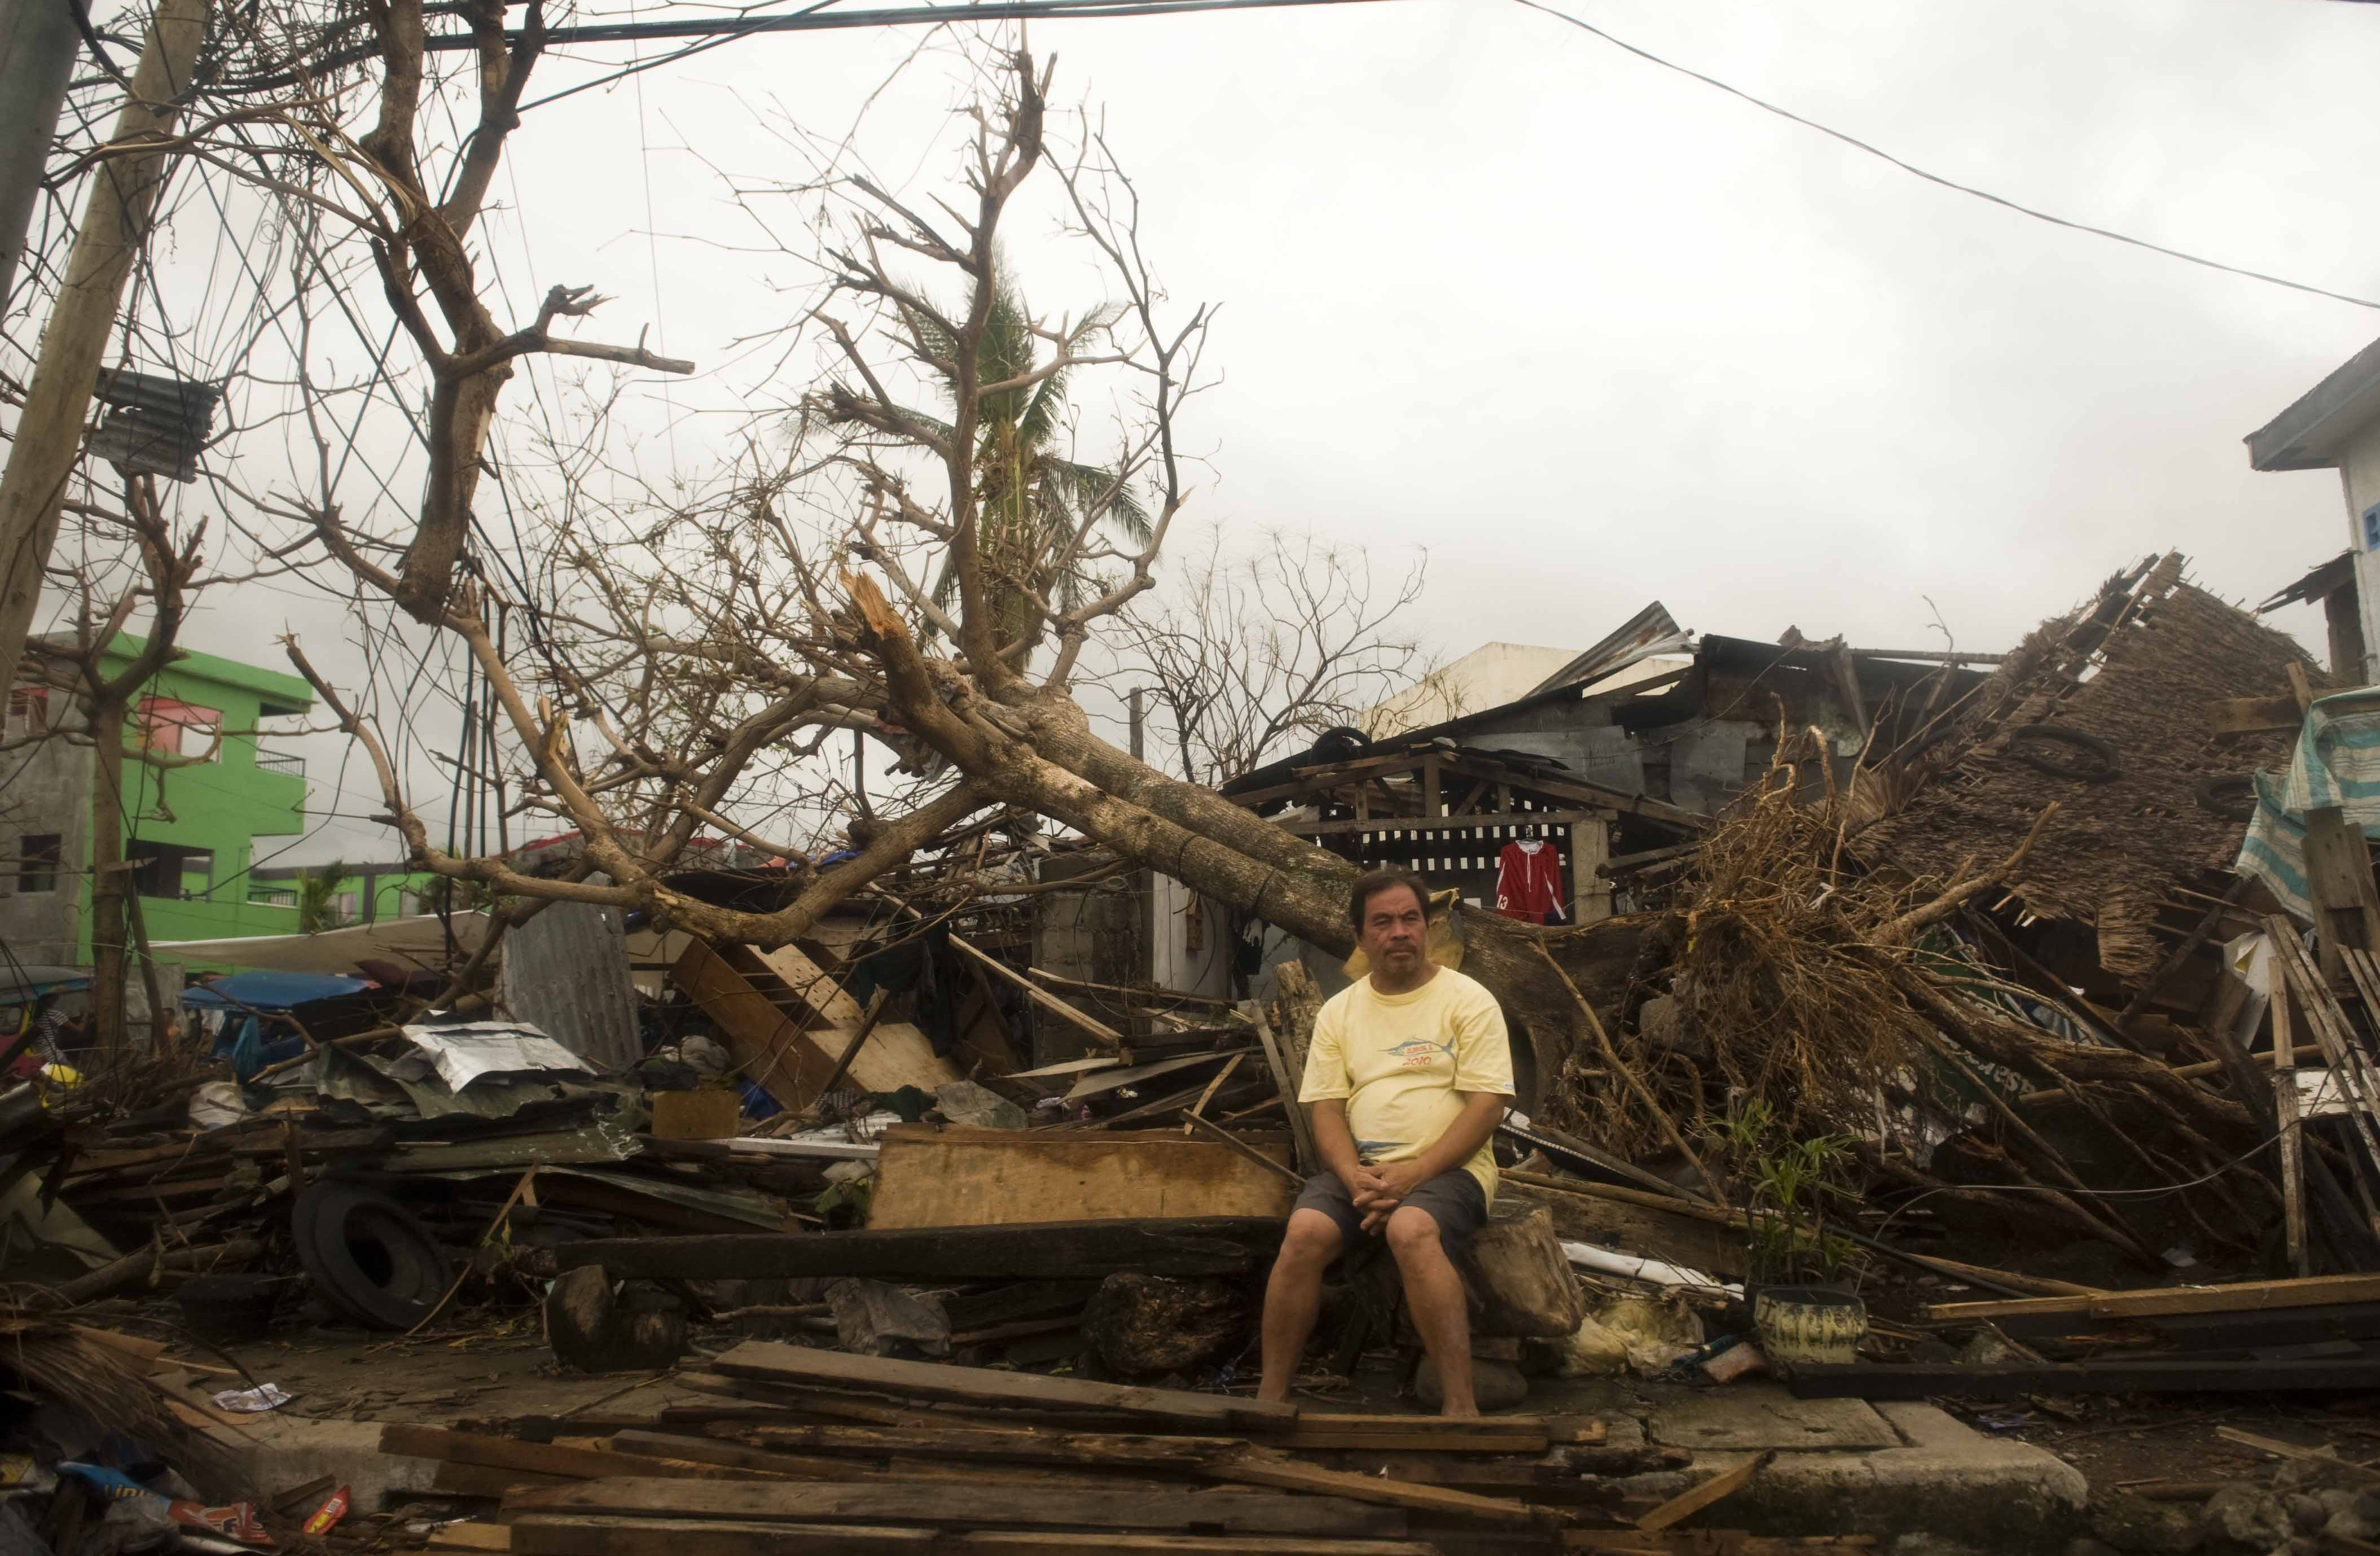 A resident sits on debris in typhoon-hit Leyte Province, Nov. 12, 2013. The United Nations said it had released $25 million in emergency funds to pay for emergency shelter materials and household items, and for assistance with the provision of emergency health services, safe water supplies and sanitation facilities. It's launching an appeal for more aid. (Lui Siu Wai/Xinhua/Zuma Press/MCT)